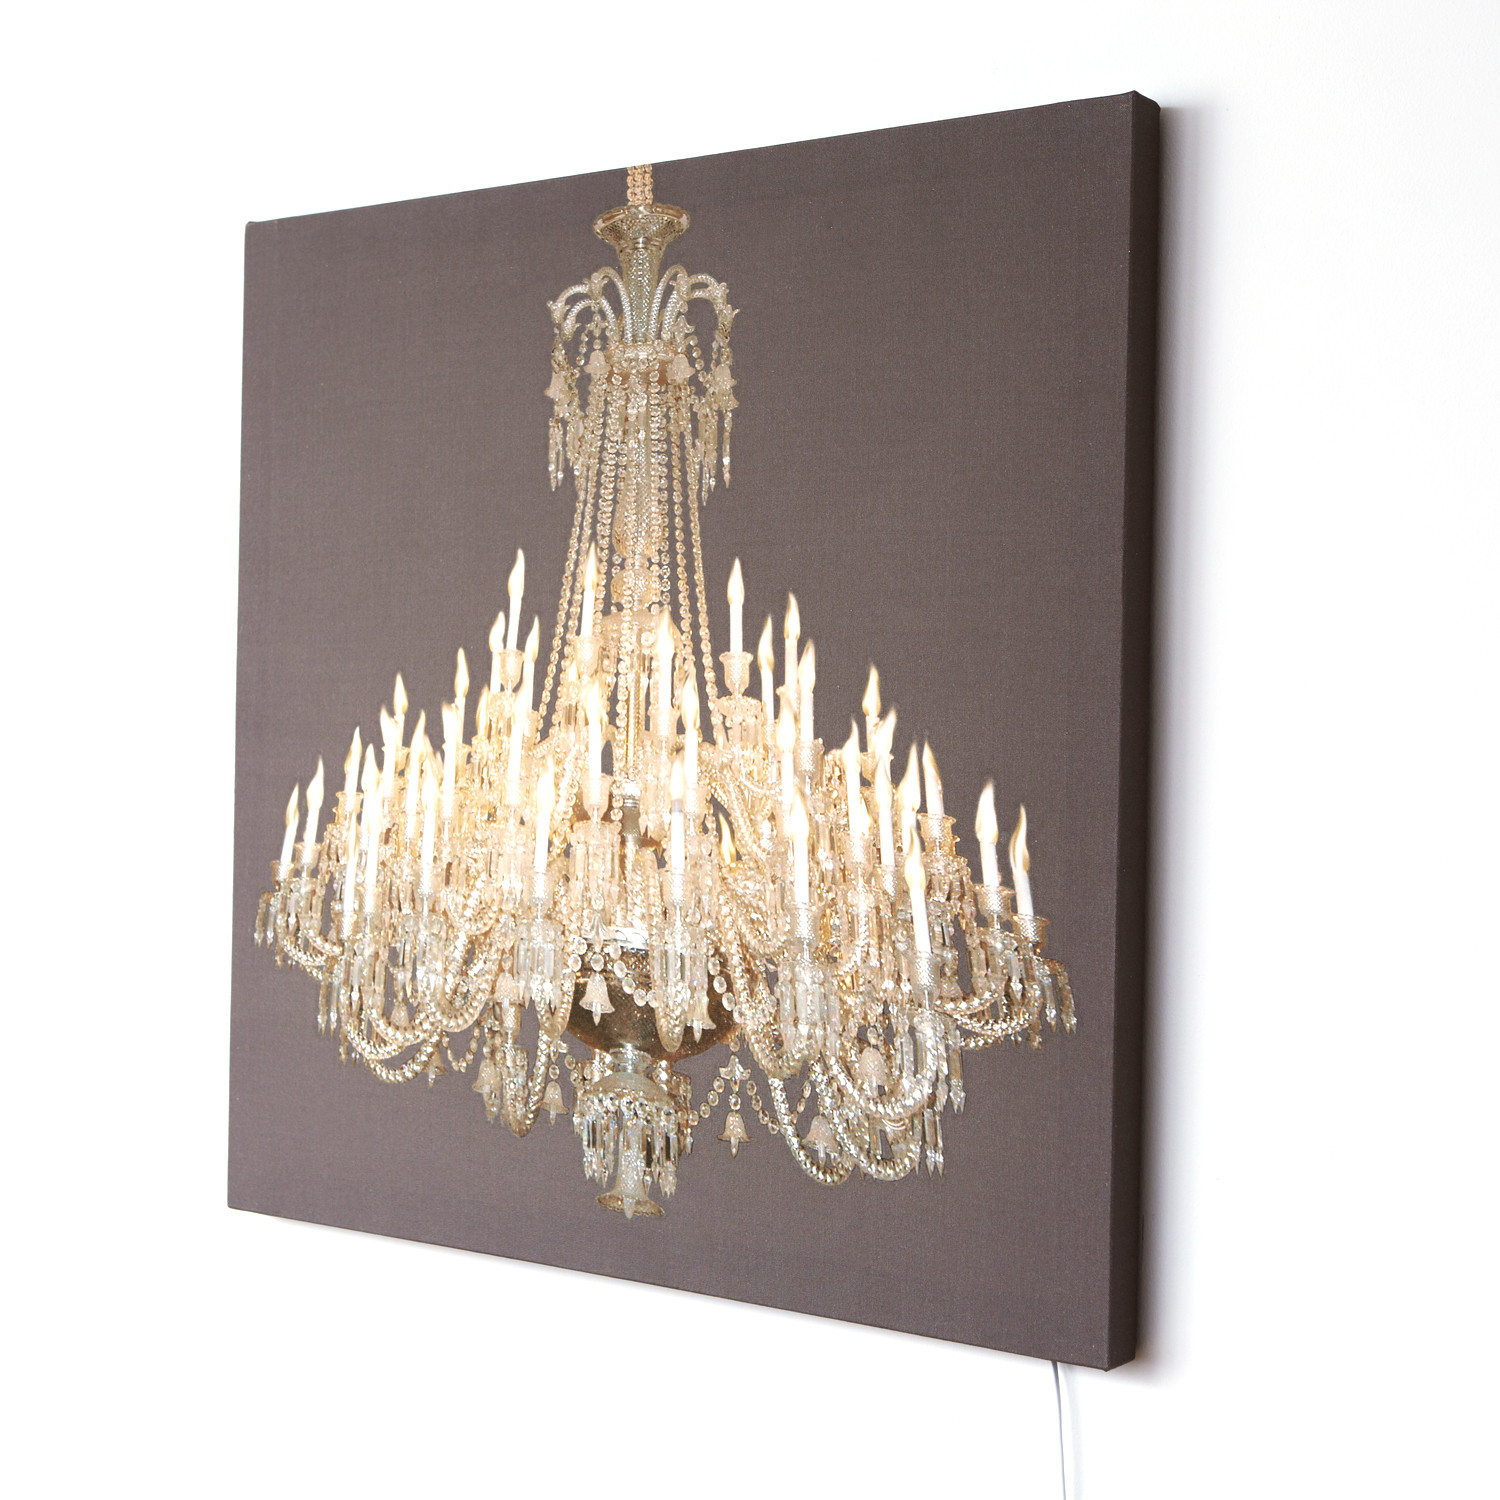 on art wrapped arlo canvas willa chandelier pillows graphic interiors candelabro pdx decor